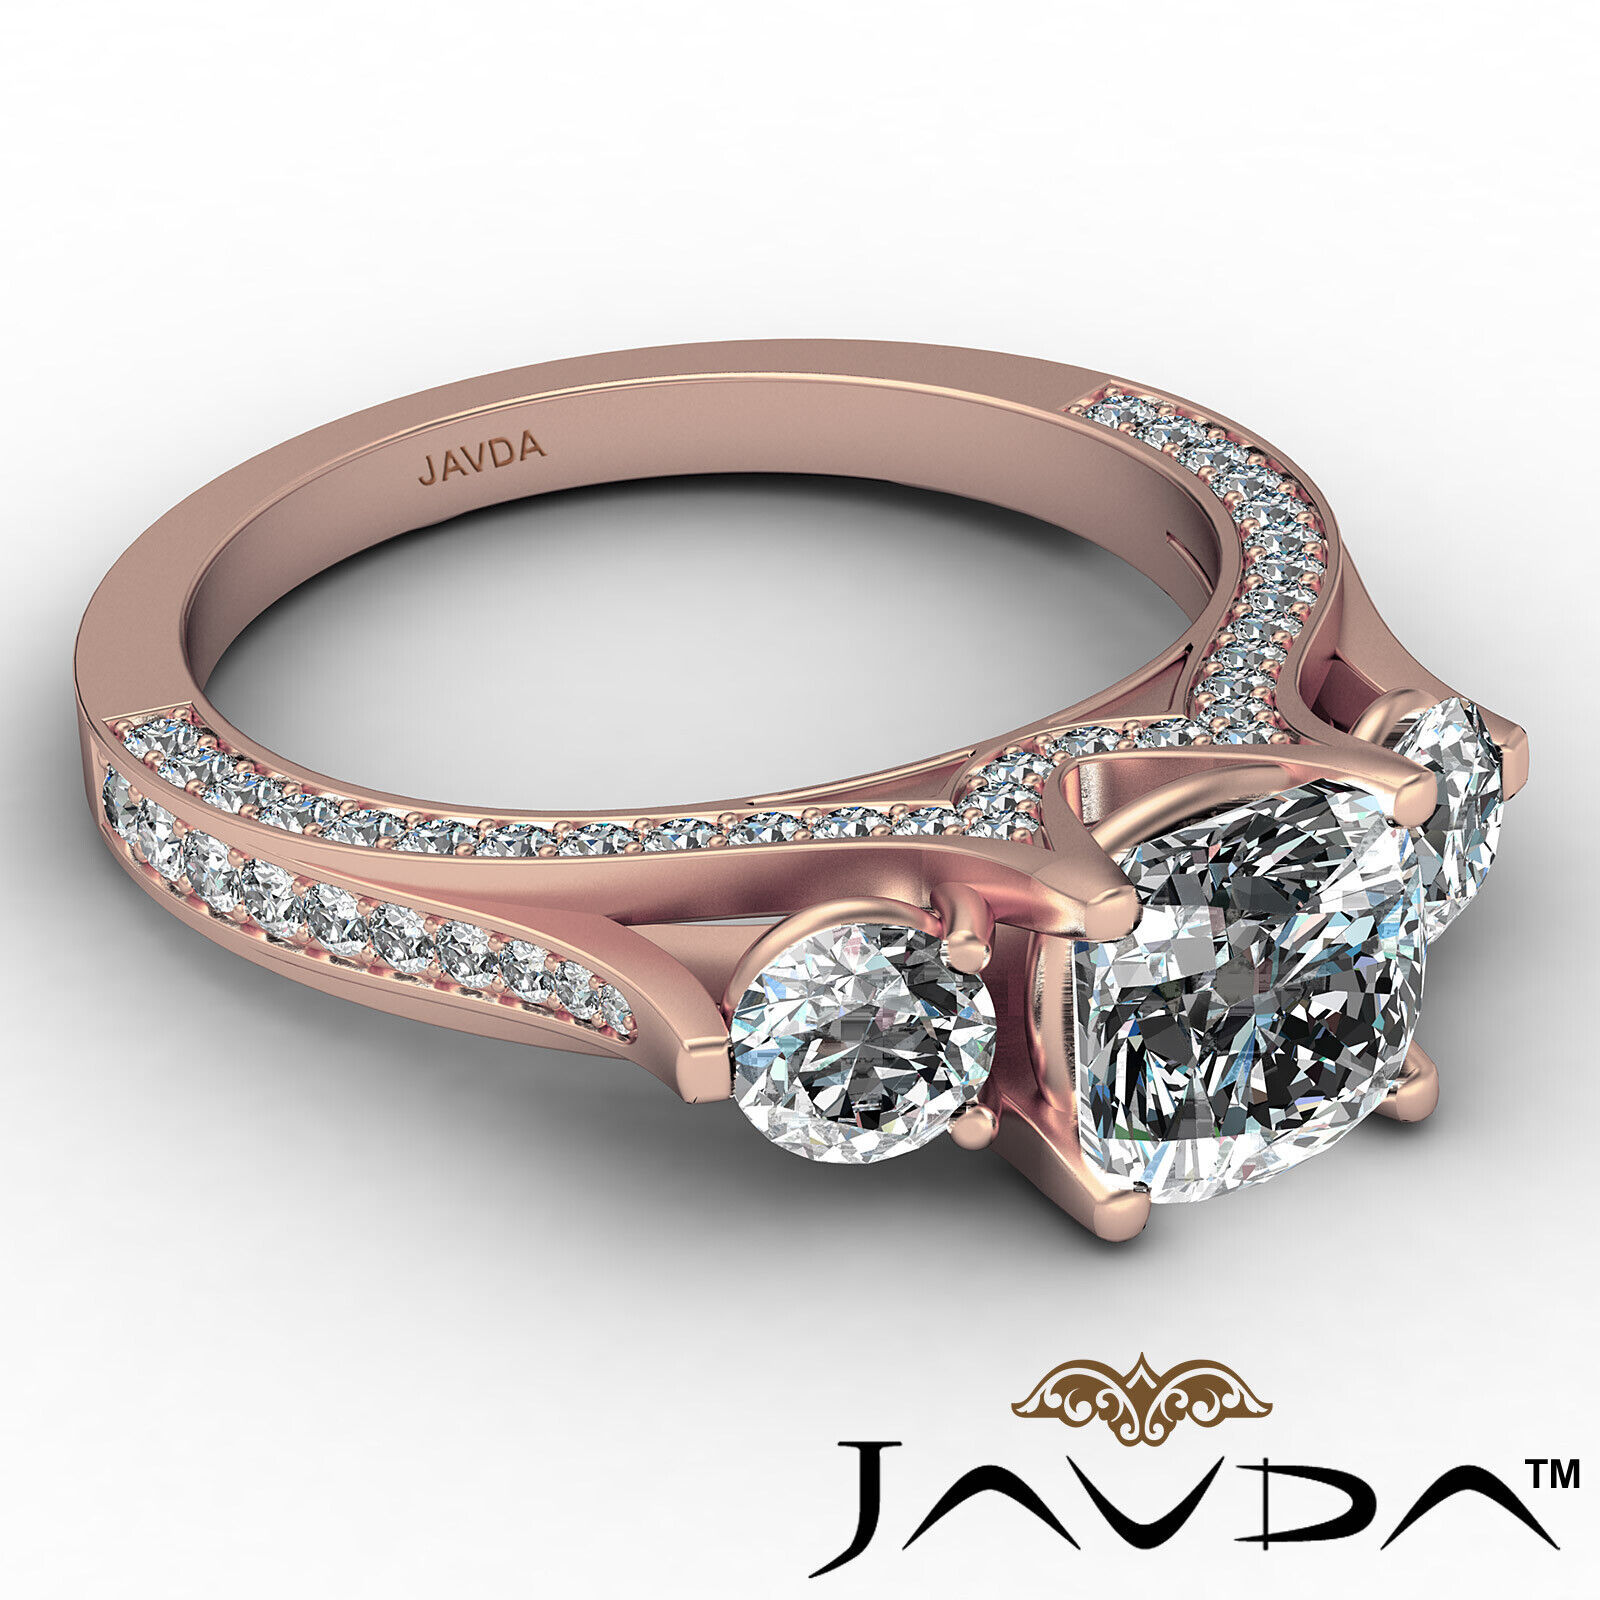 Cushion Diamond Engagement Ring Certified by GIA E Color & VVS1 clarity 2.1 ctw 8